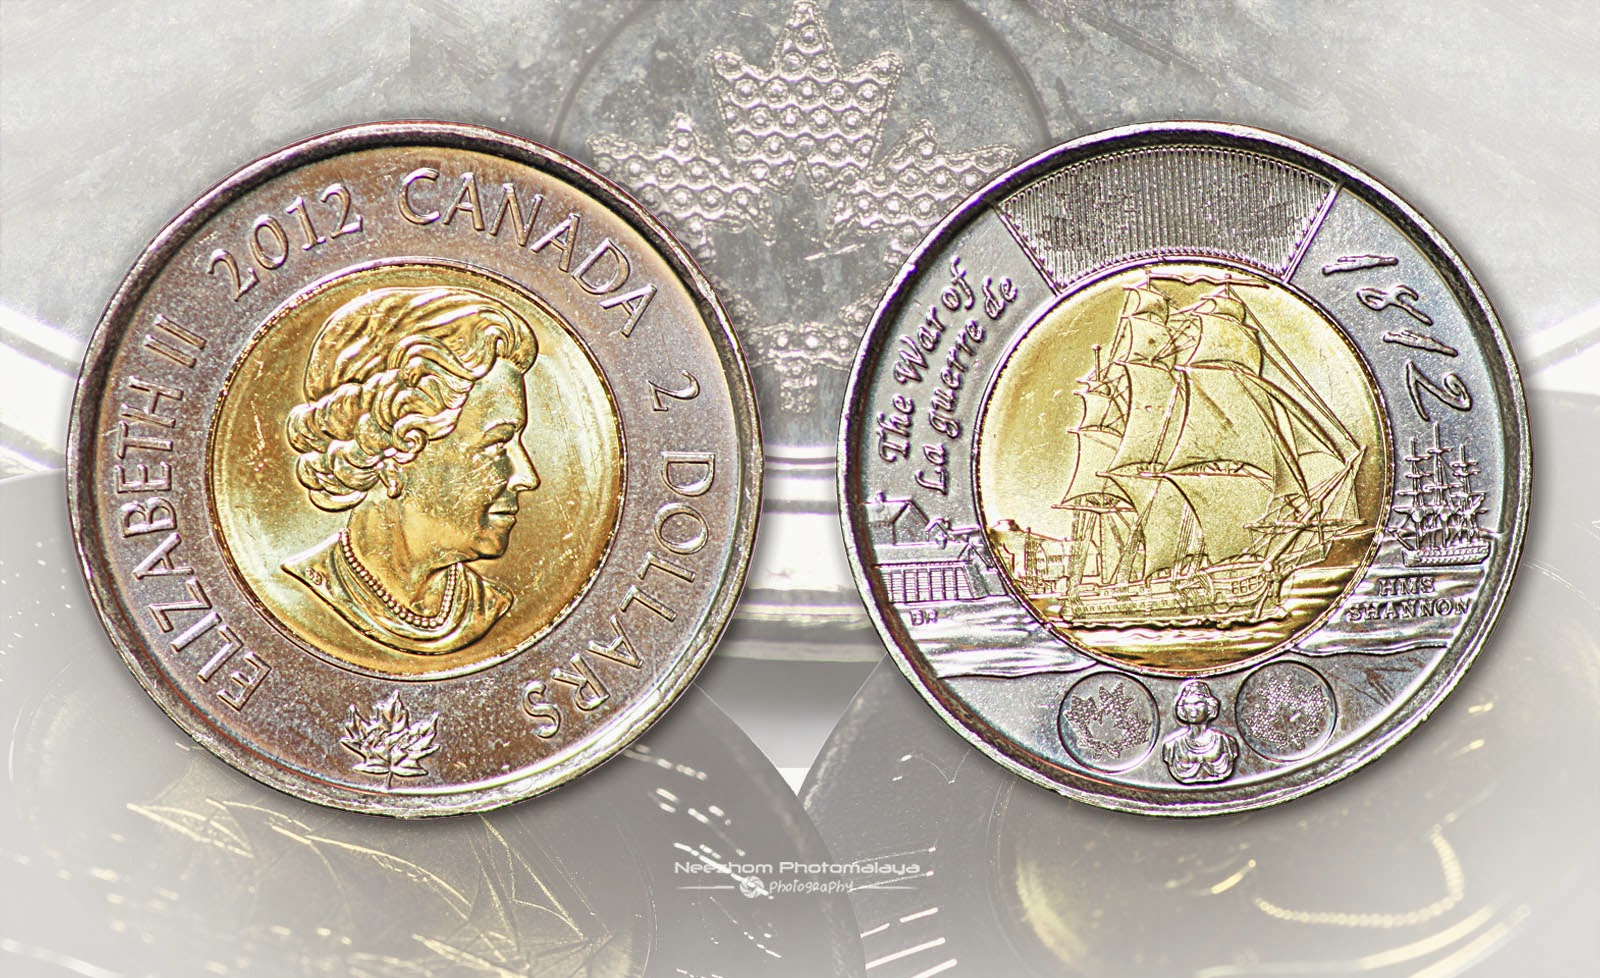 Canada 2 dollars 2012 - The war of La Guerre De